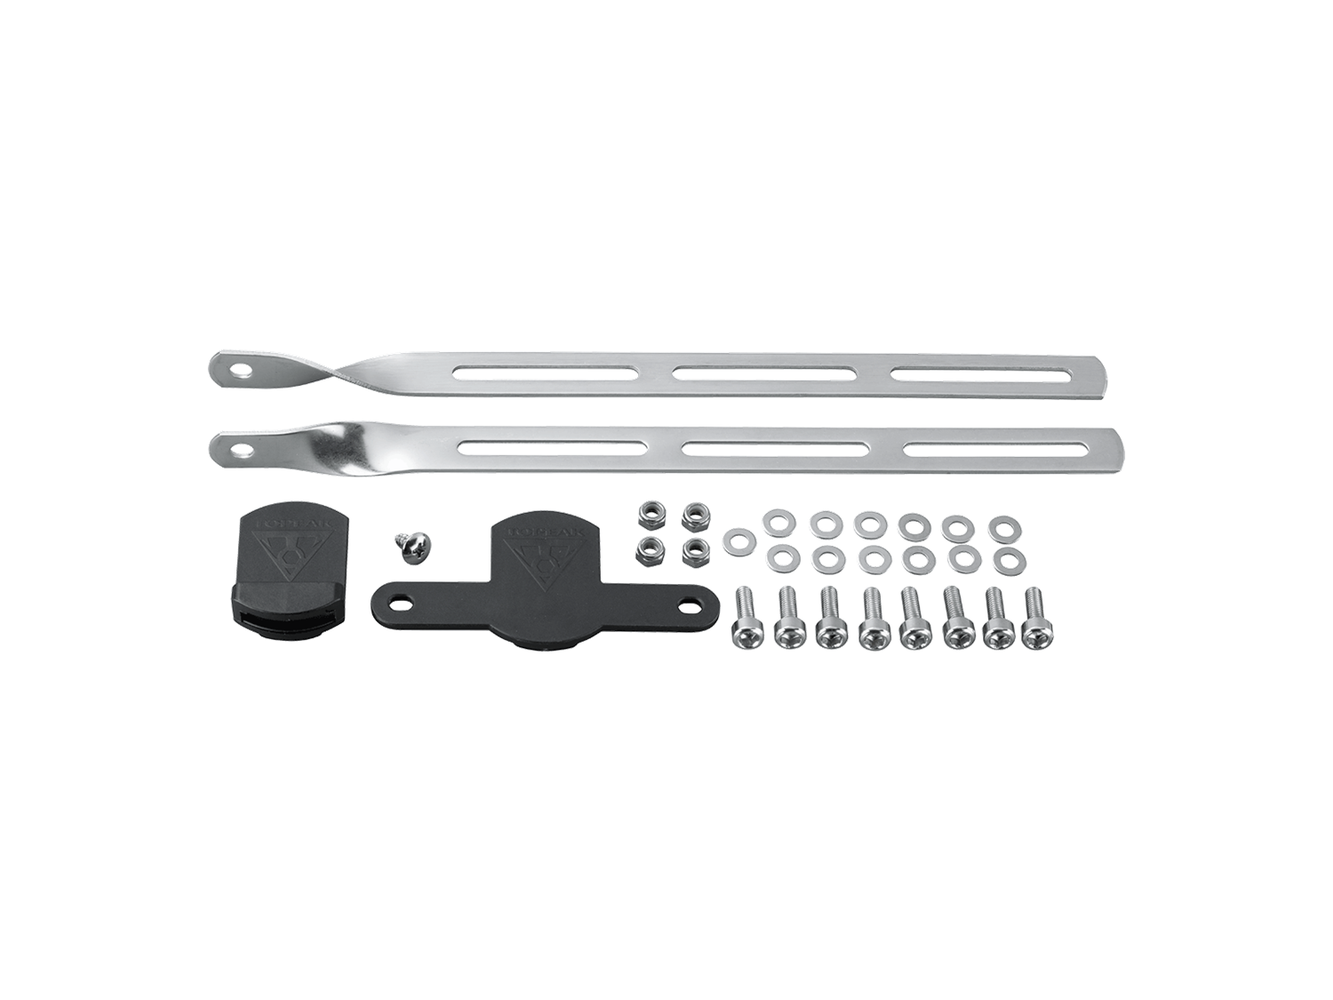 Topeak Rack Extra Long Mount Kit compatible with all Topeak racks